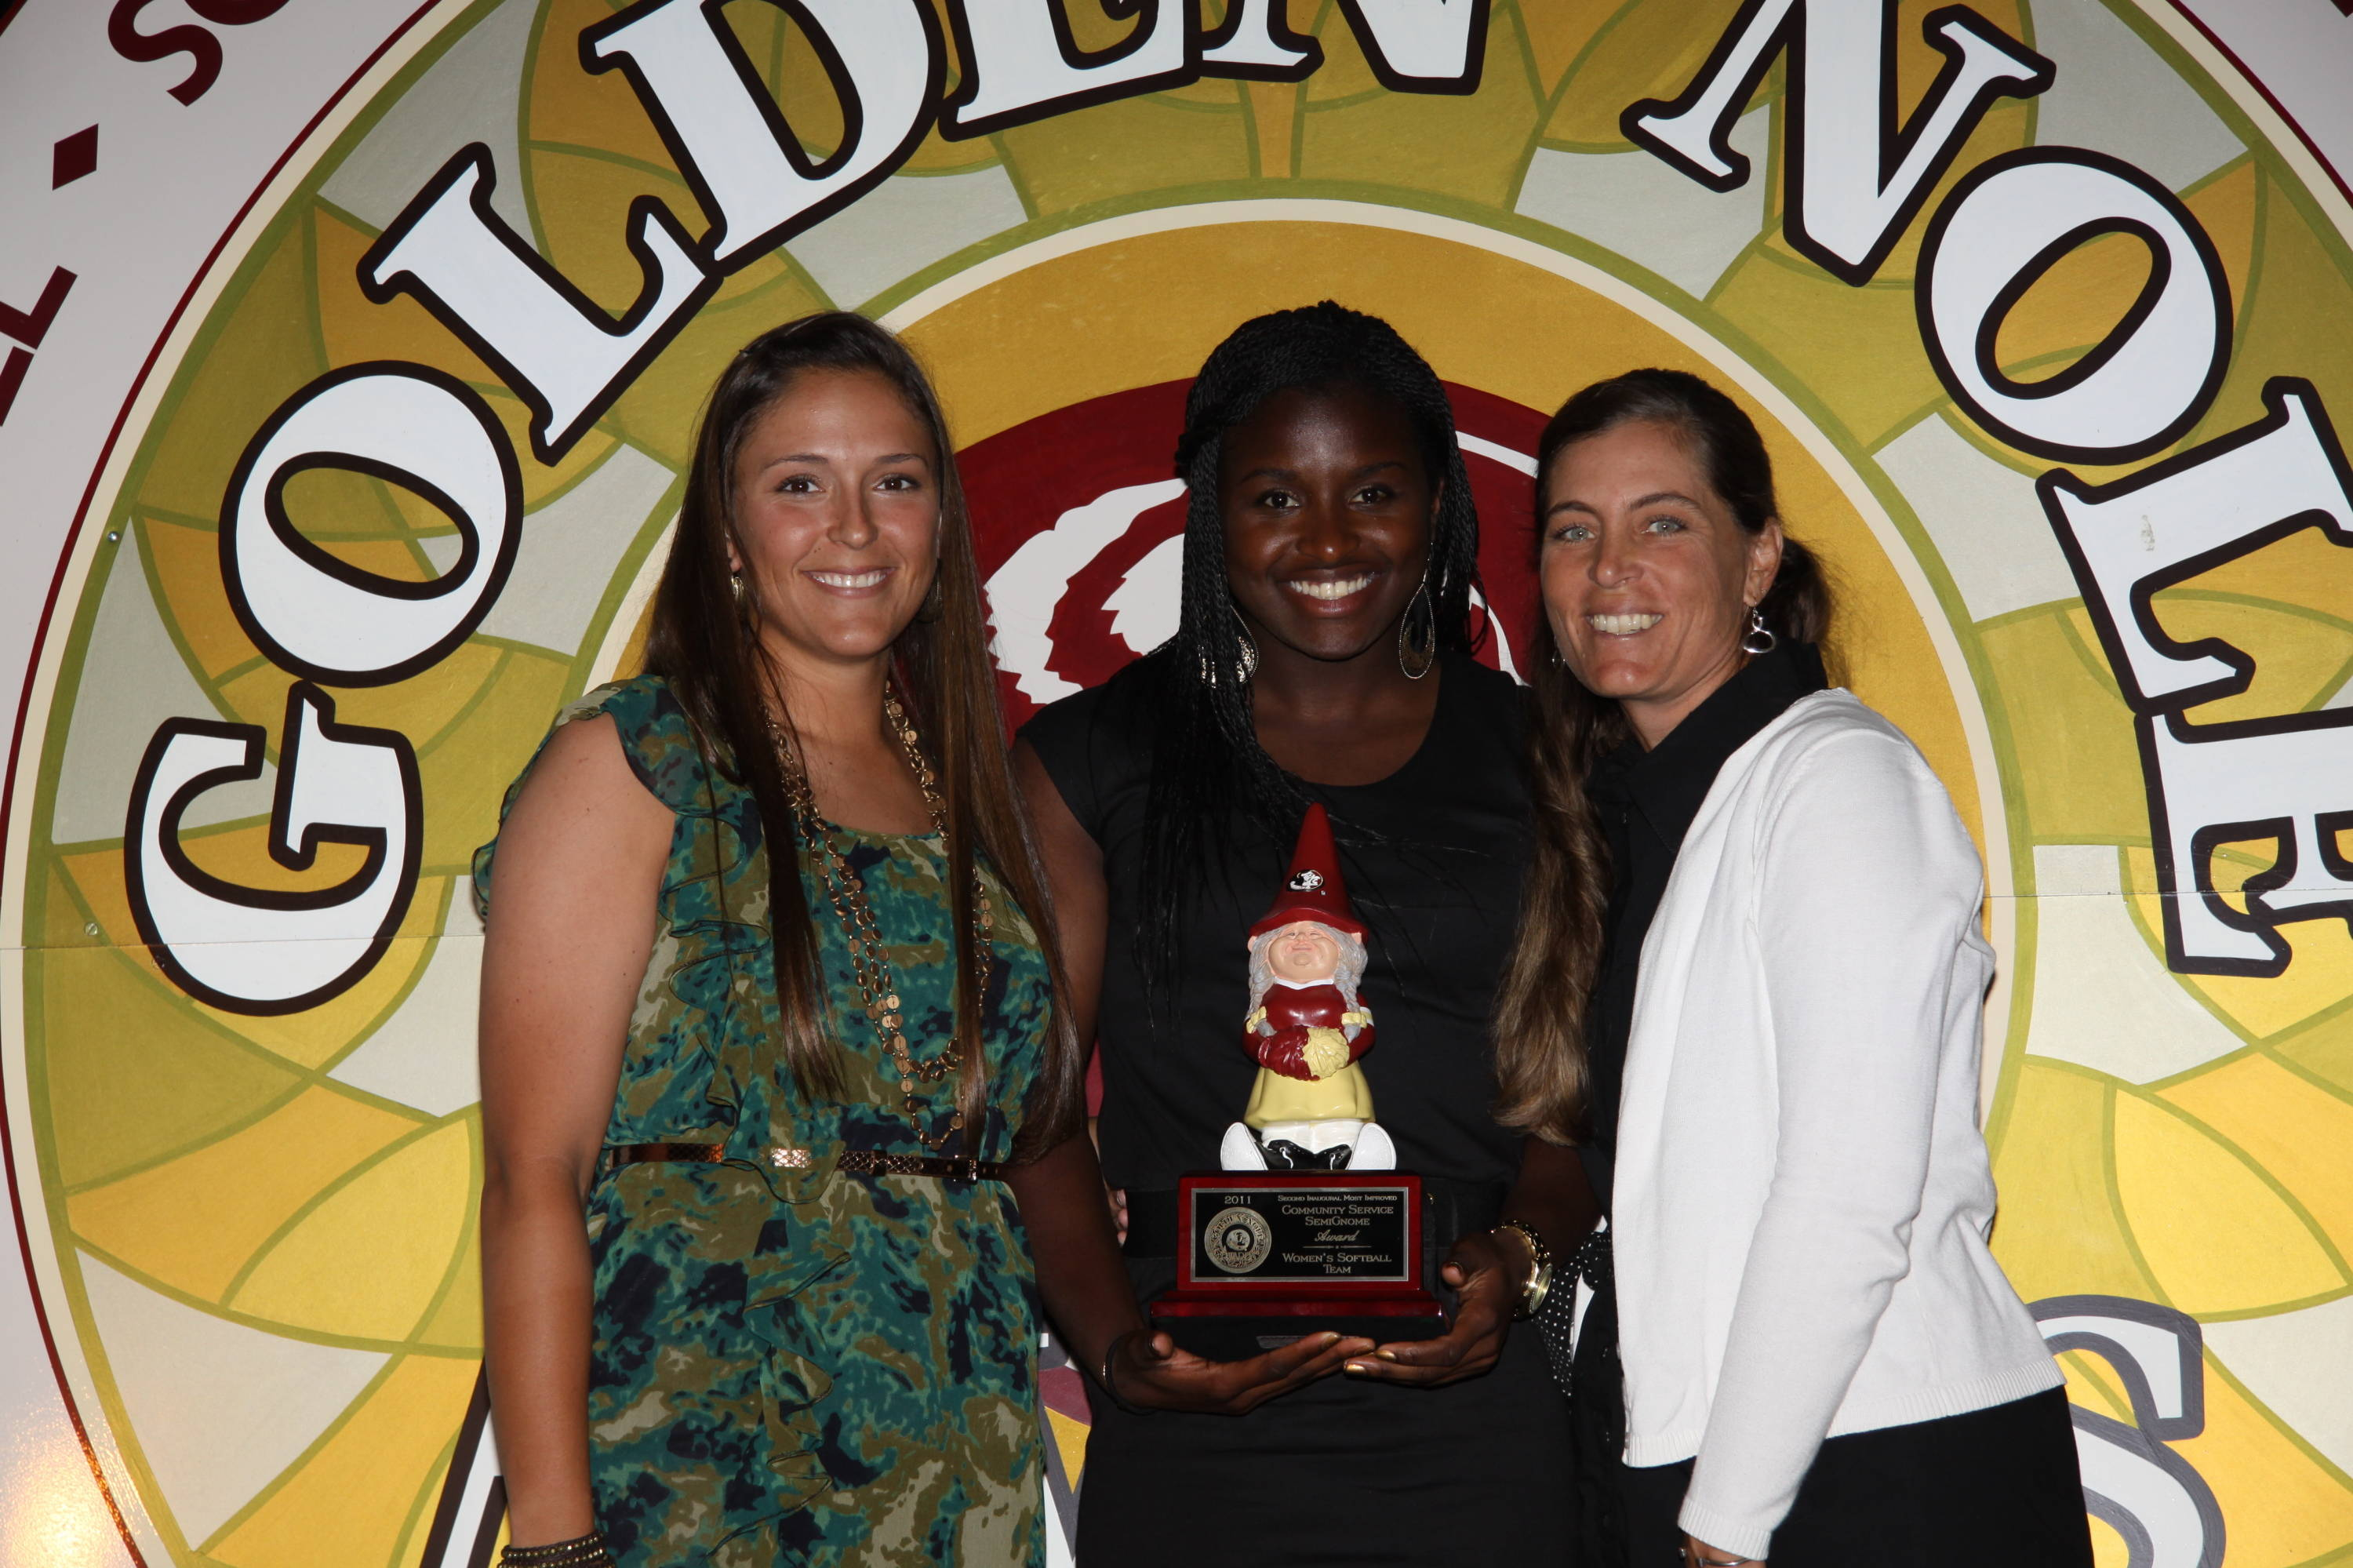 Ashley Stager, Morgan Bullock and head coach Lonni Alameda accept the second annual SemiGnome Award, recognizing the greatest improvement by a team in community service